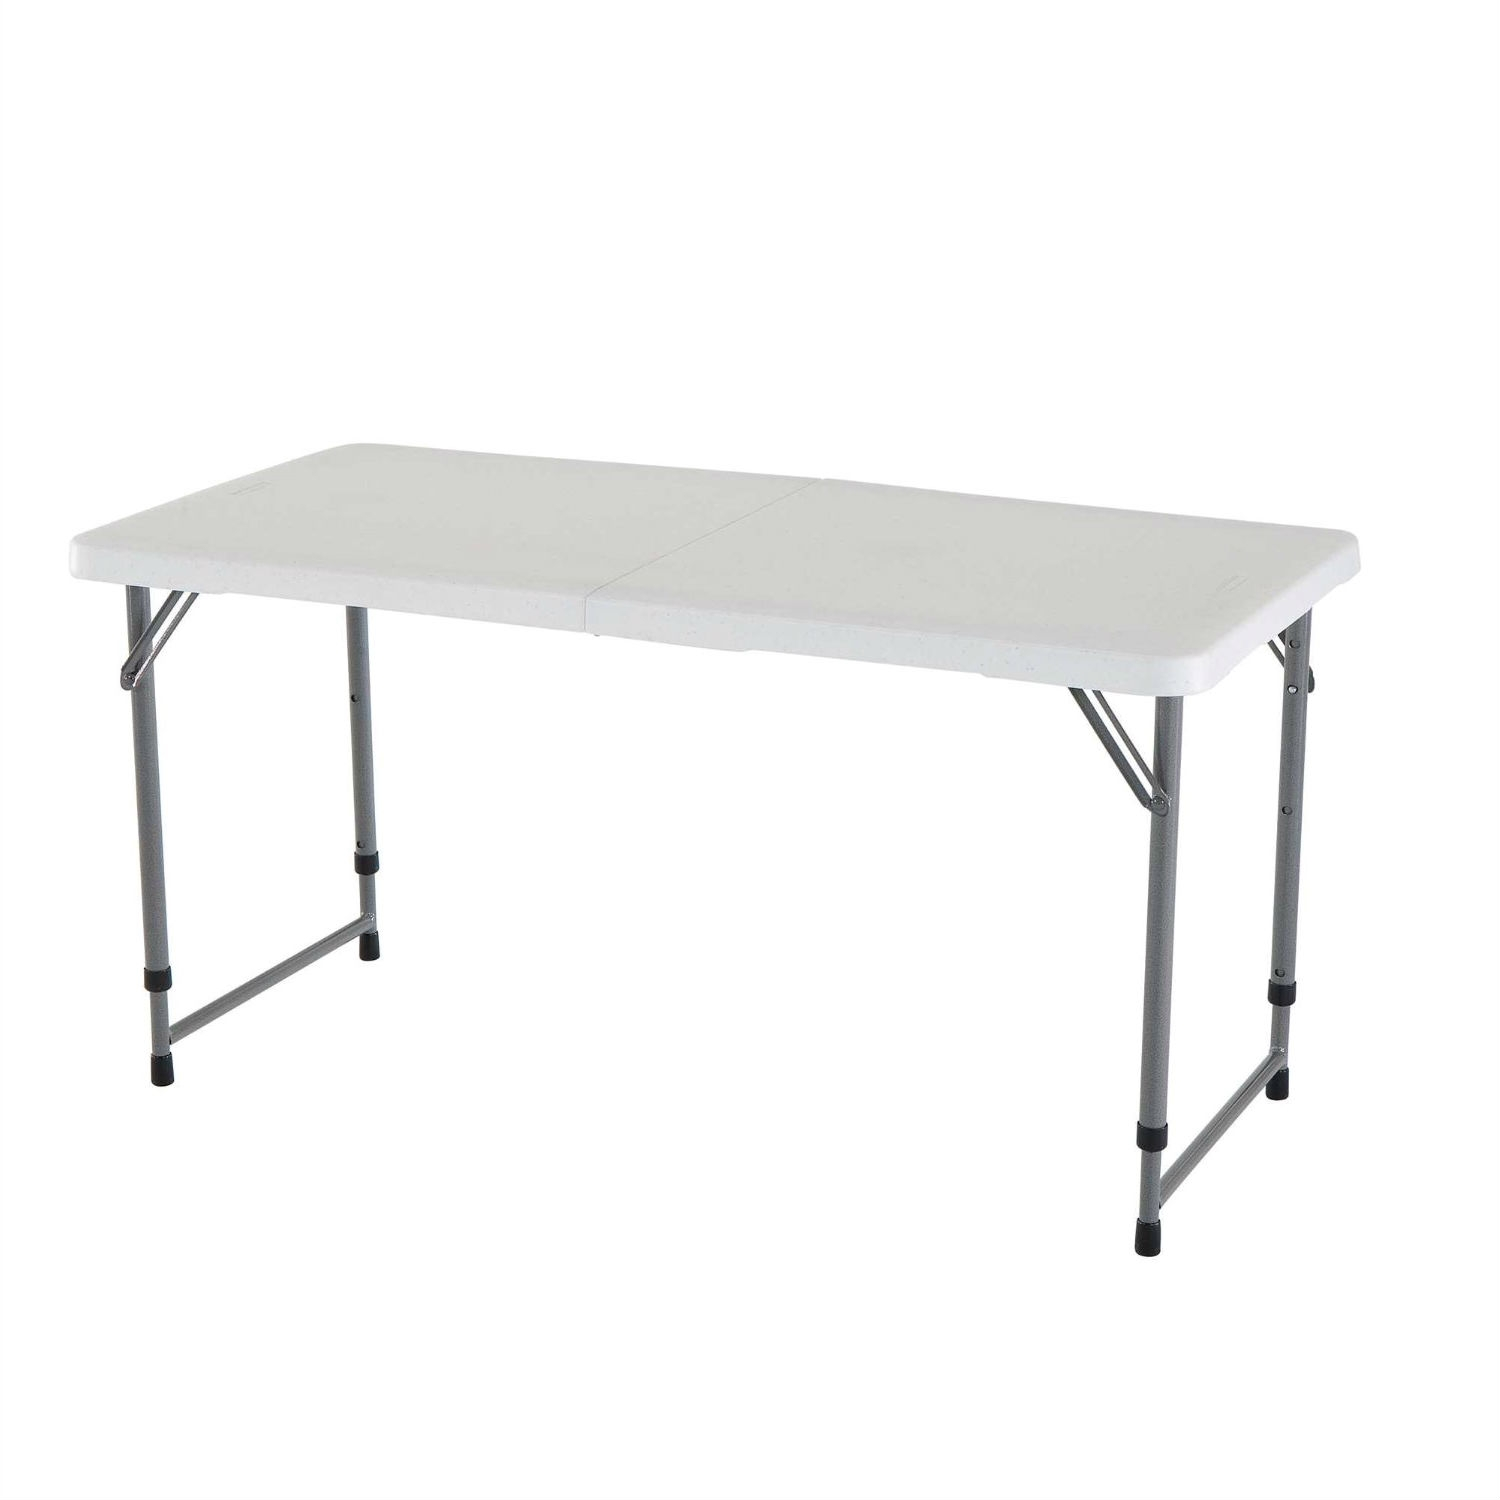 Enjoyable Adjustable Height White Hdpe Folding Table With Powder Coated Steel Frame Caraccident5 Cool Chair Designs And Ideas Caraccident5Info